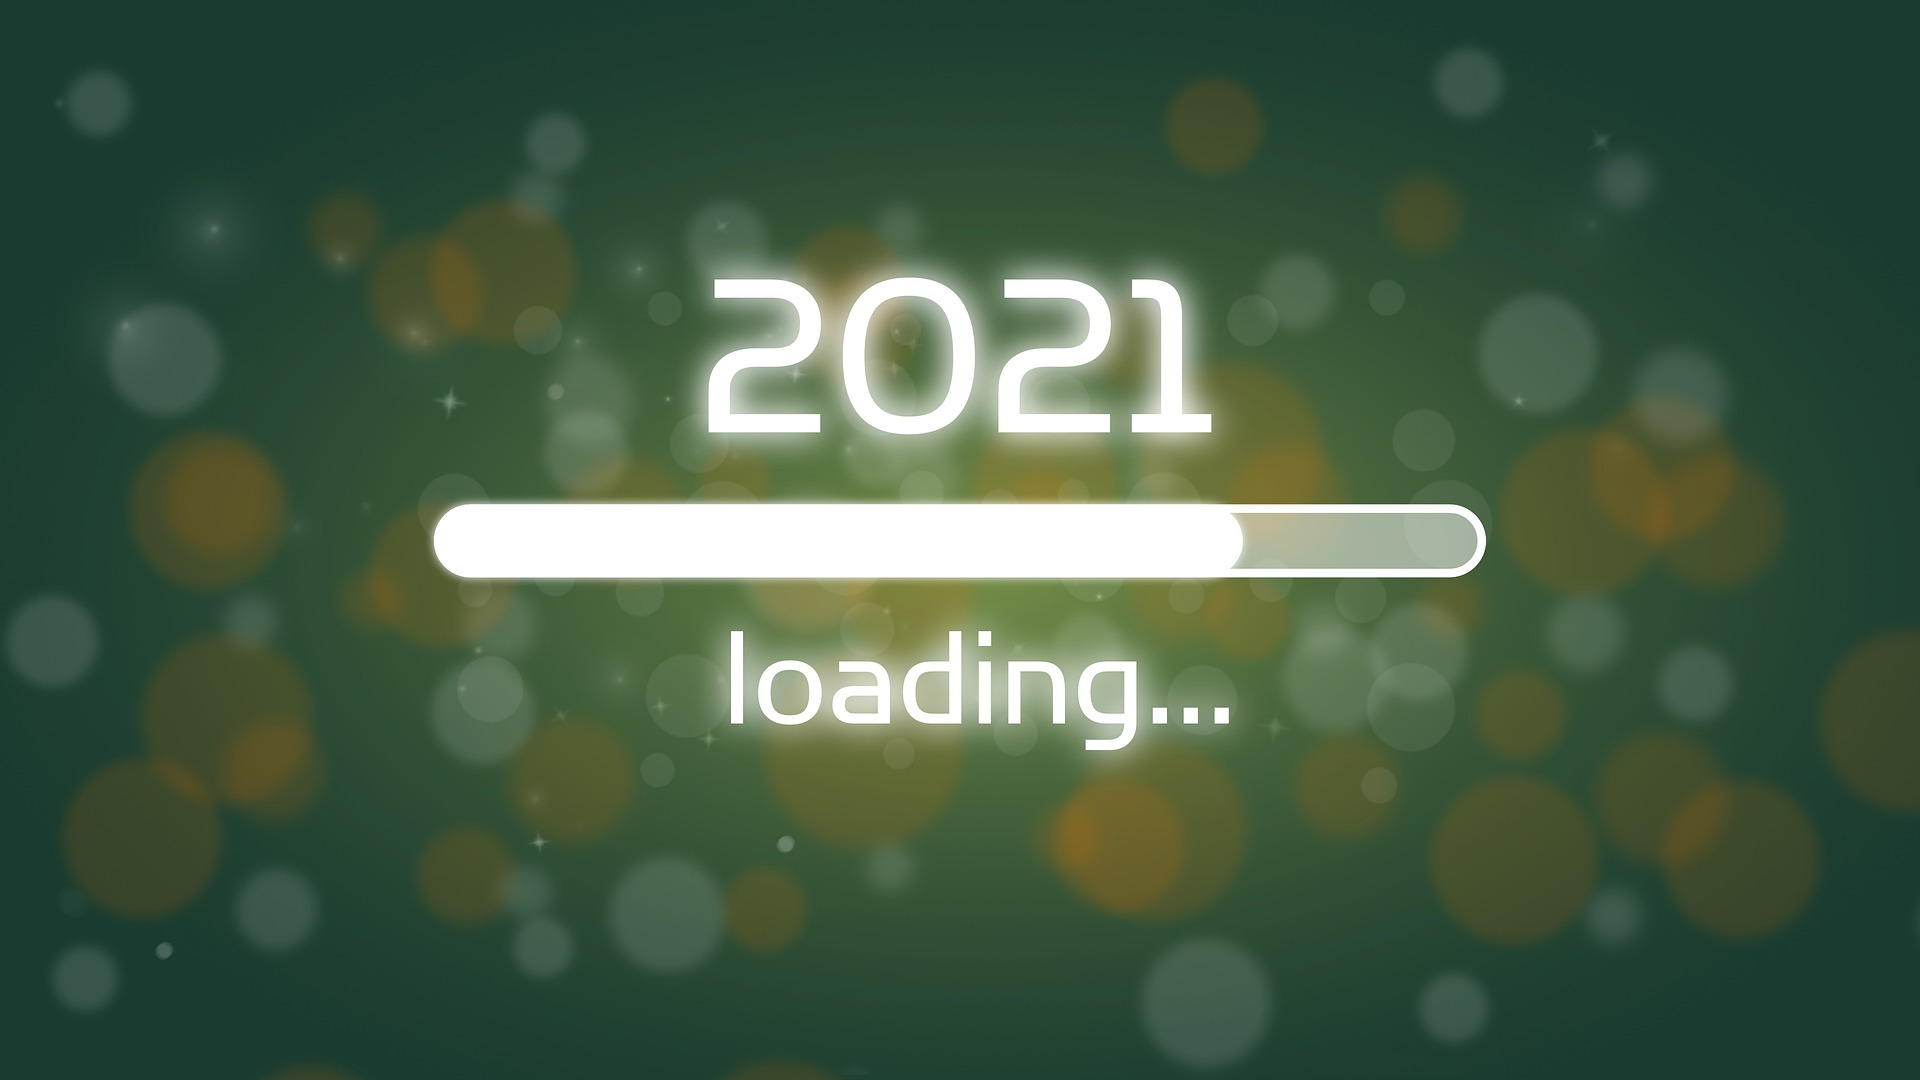 2021 loading bar for automated infrastructure updates Microsoft